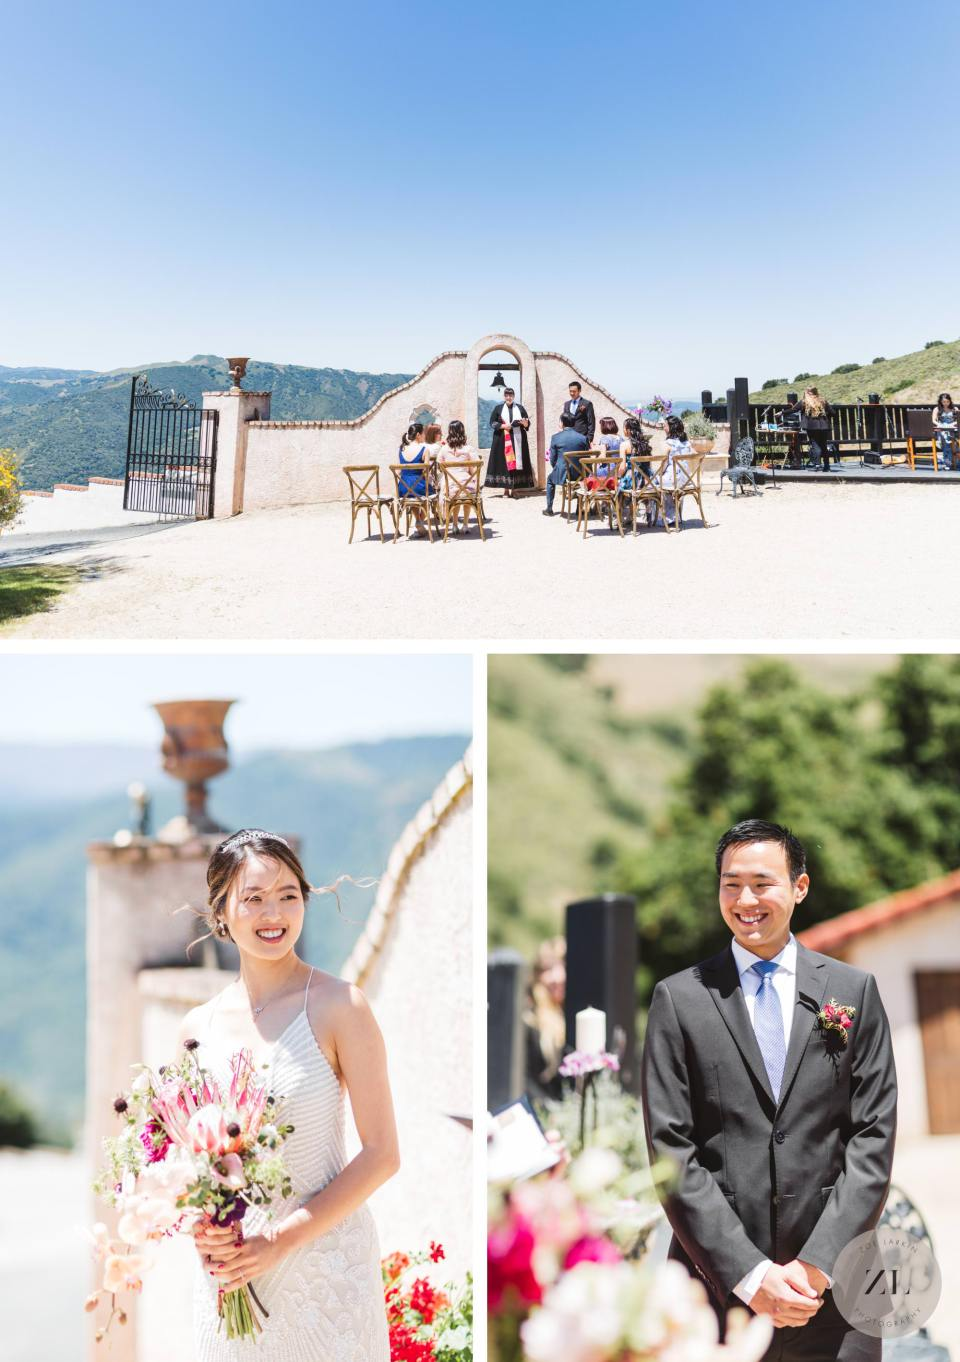 wedding ceremony at Chateau Carmel, Carmel Valley Wedding | Zoe Larkin Photography